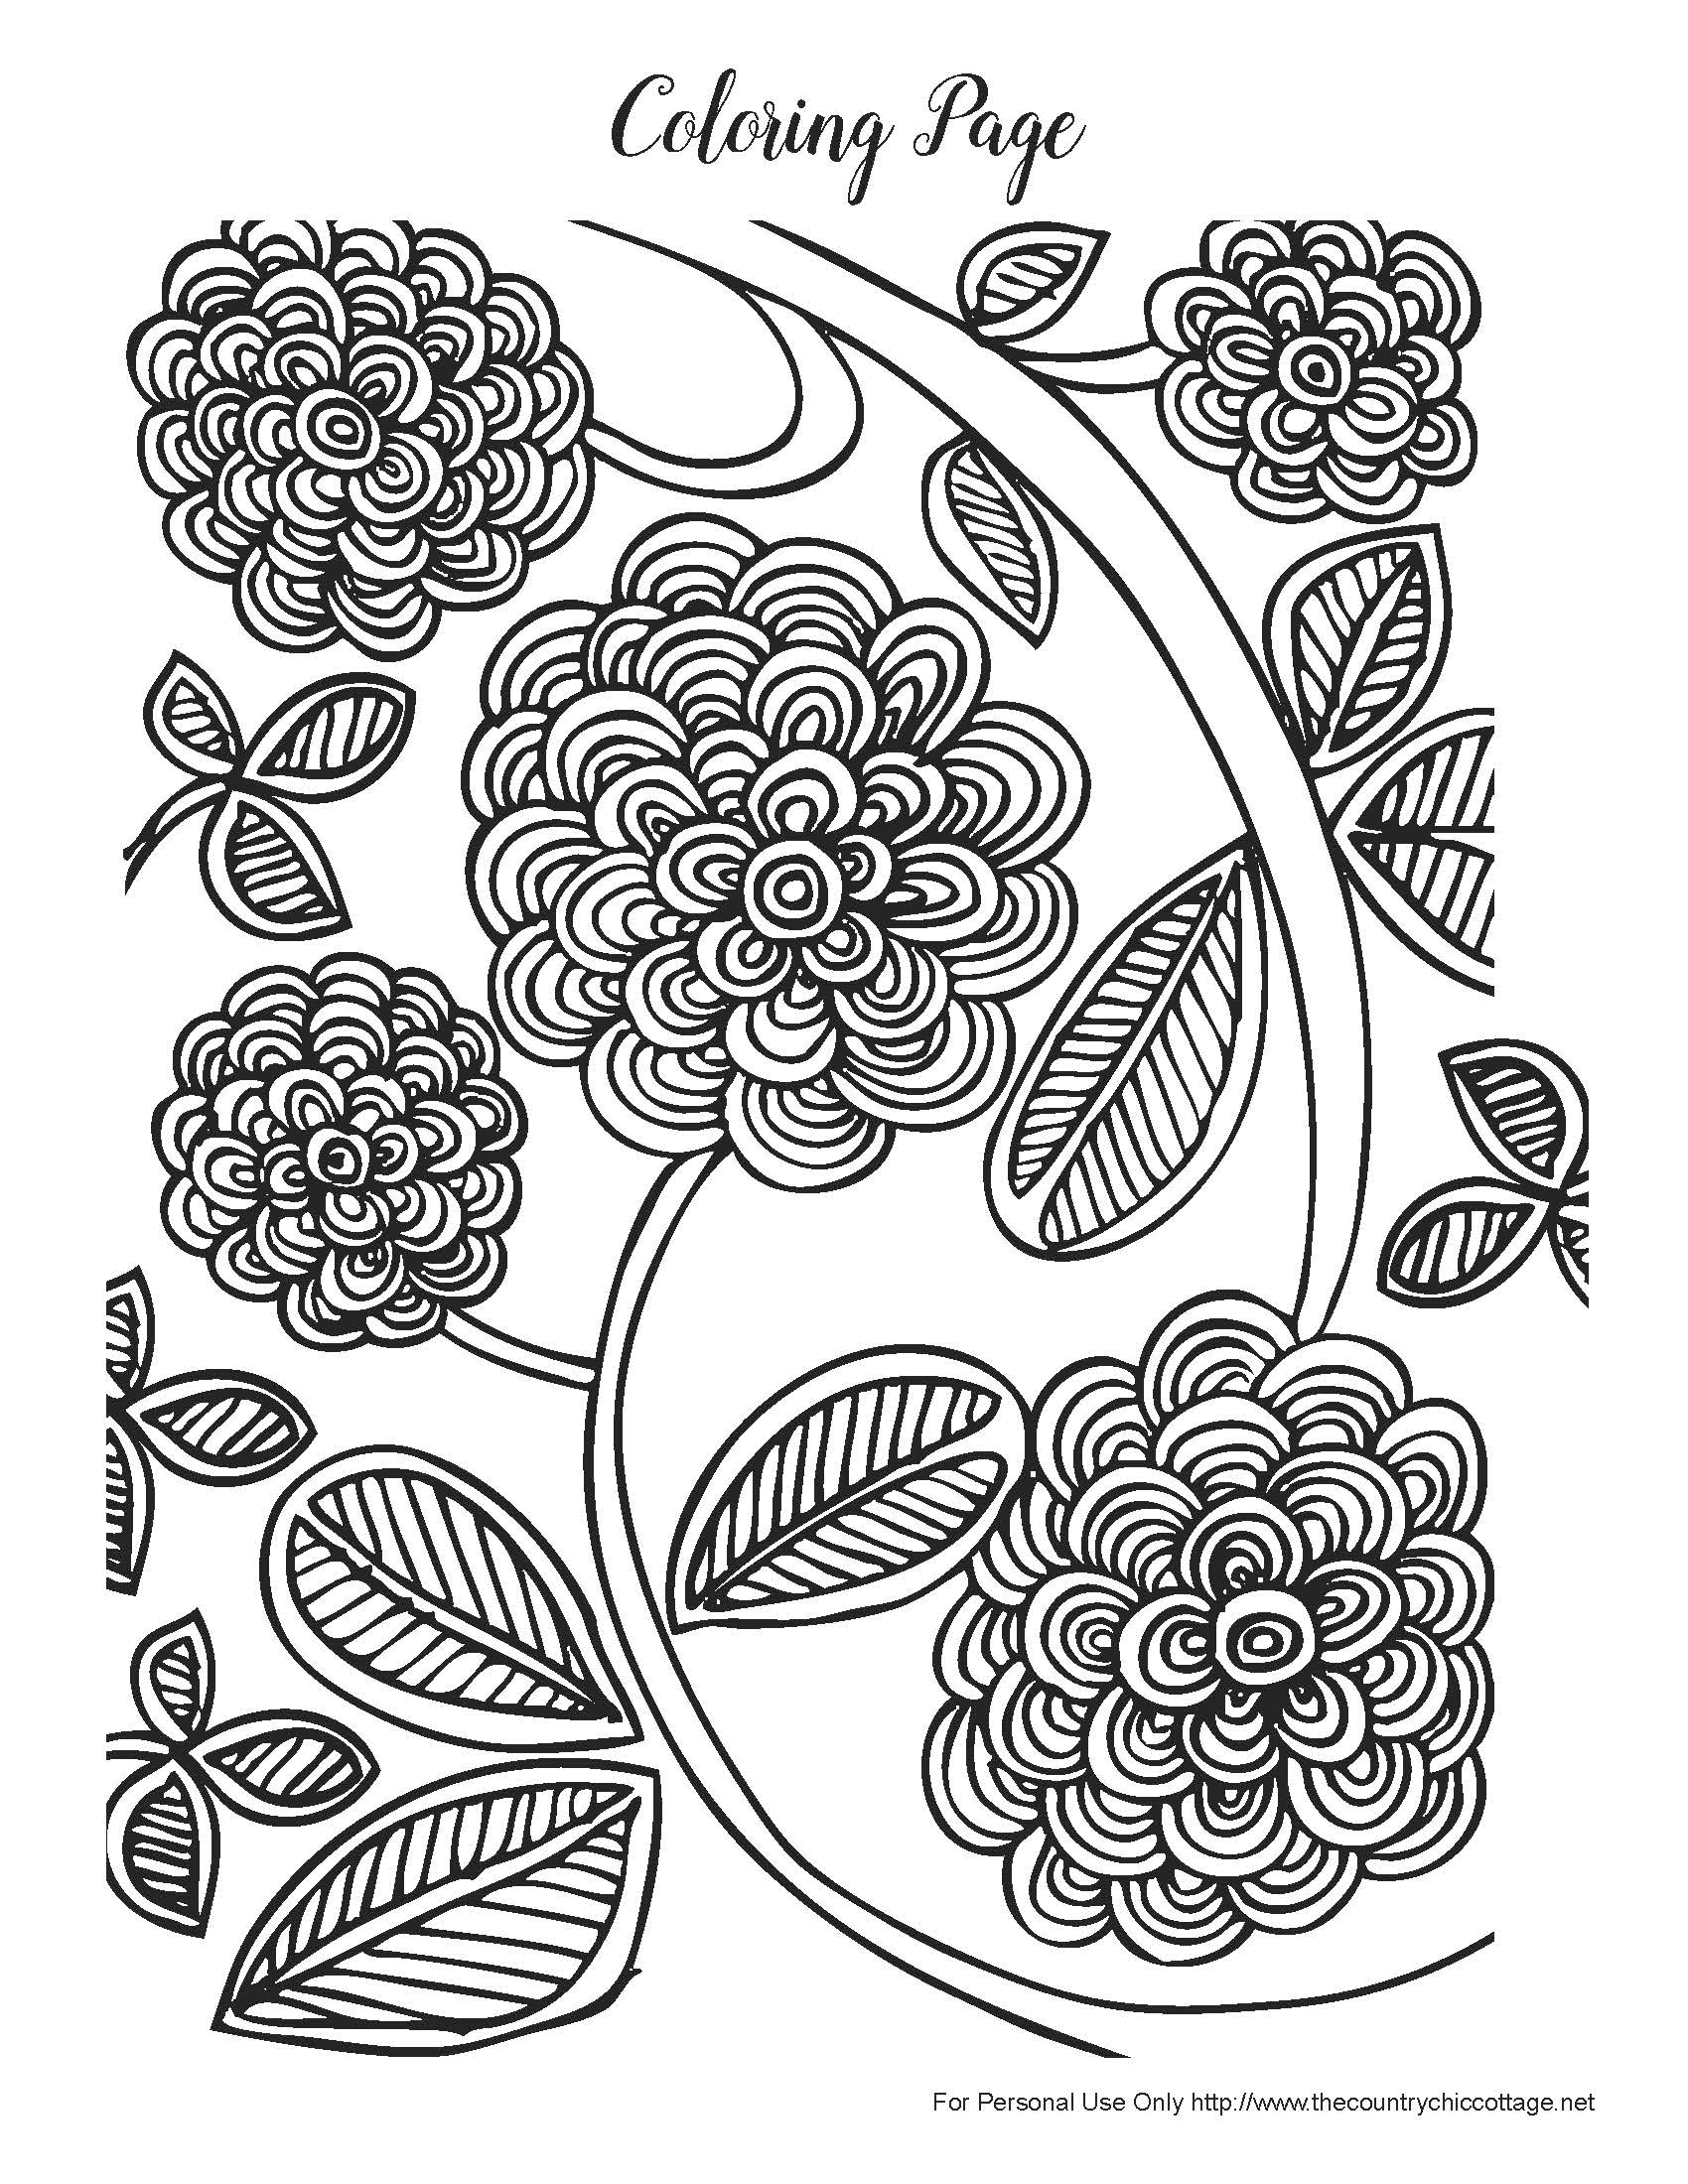 free printable spring coloring pages for adults - free spring coloring pages for adults